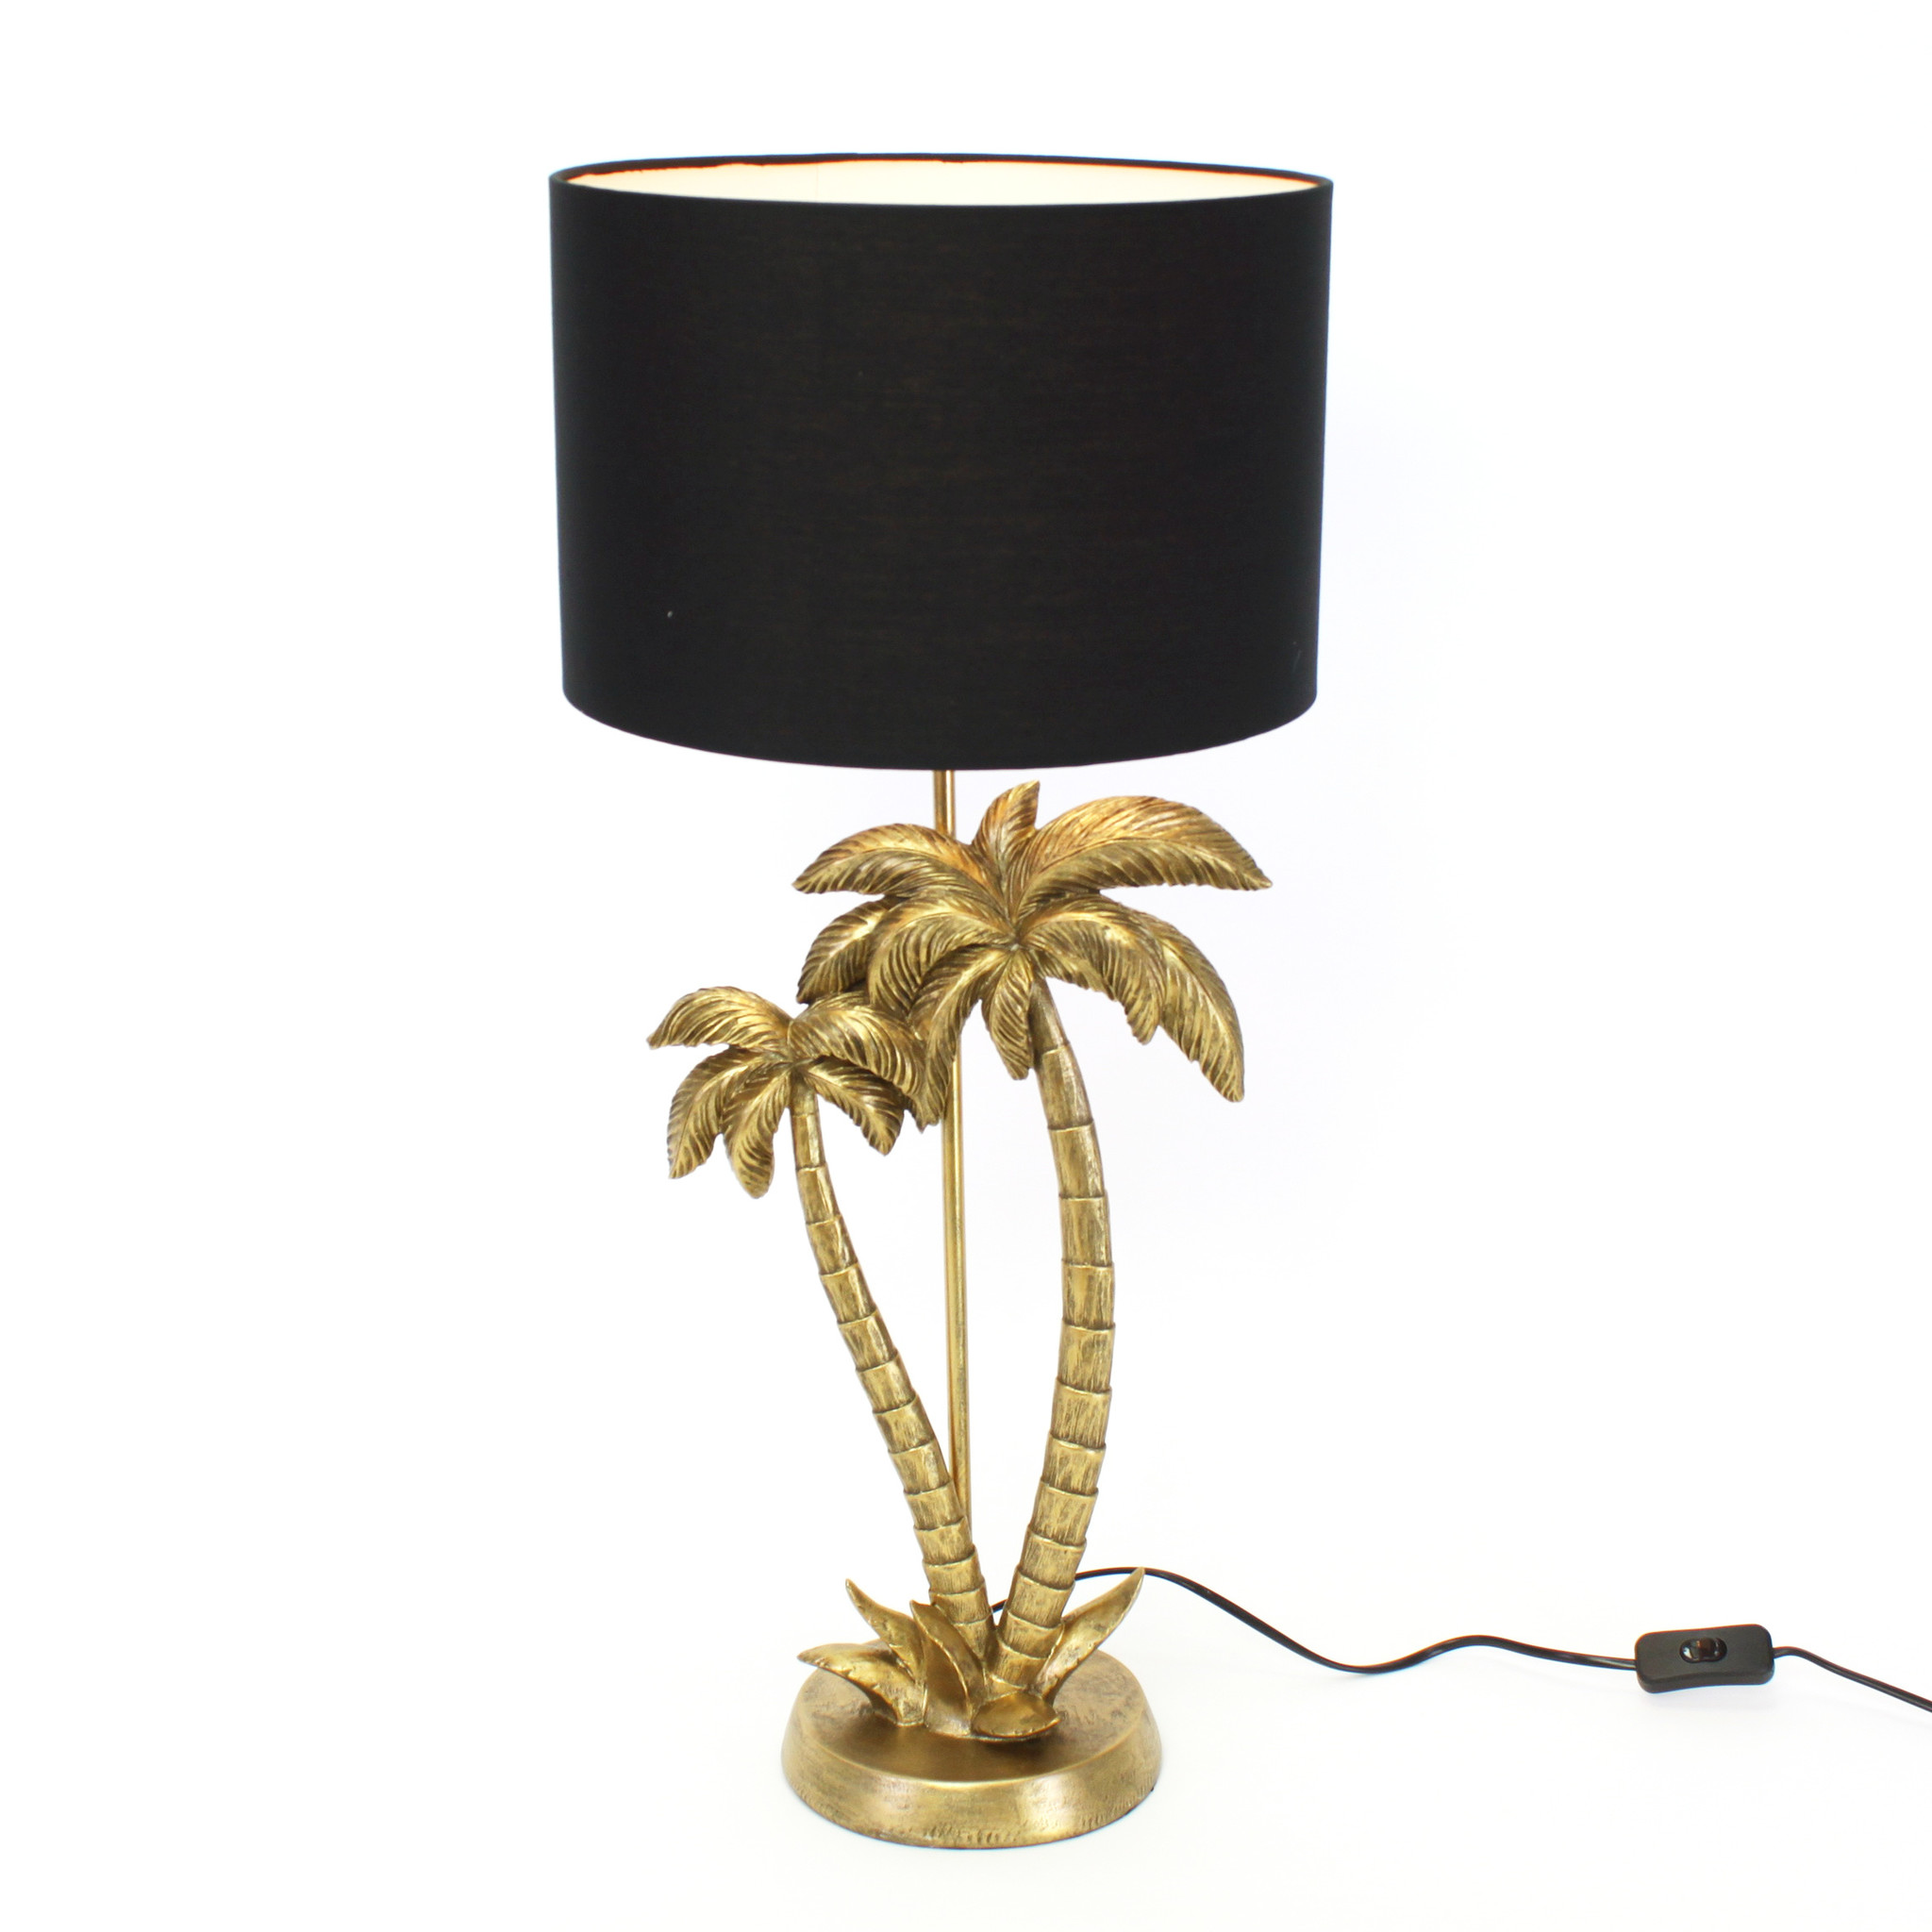 Gold palm tree table lamp with black shade